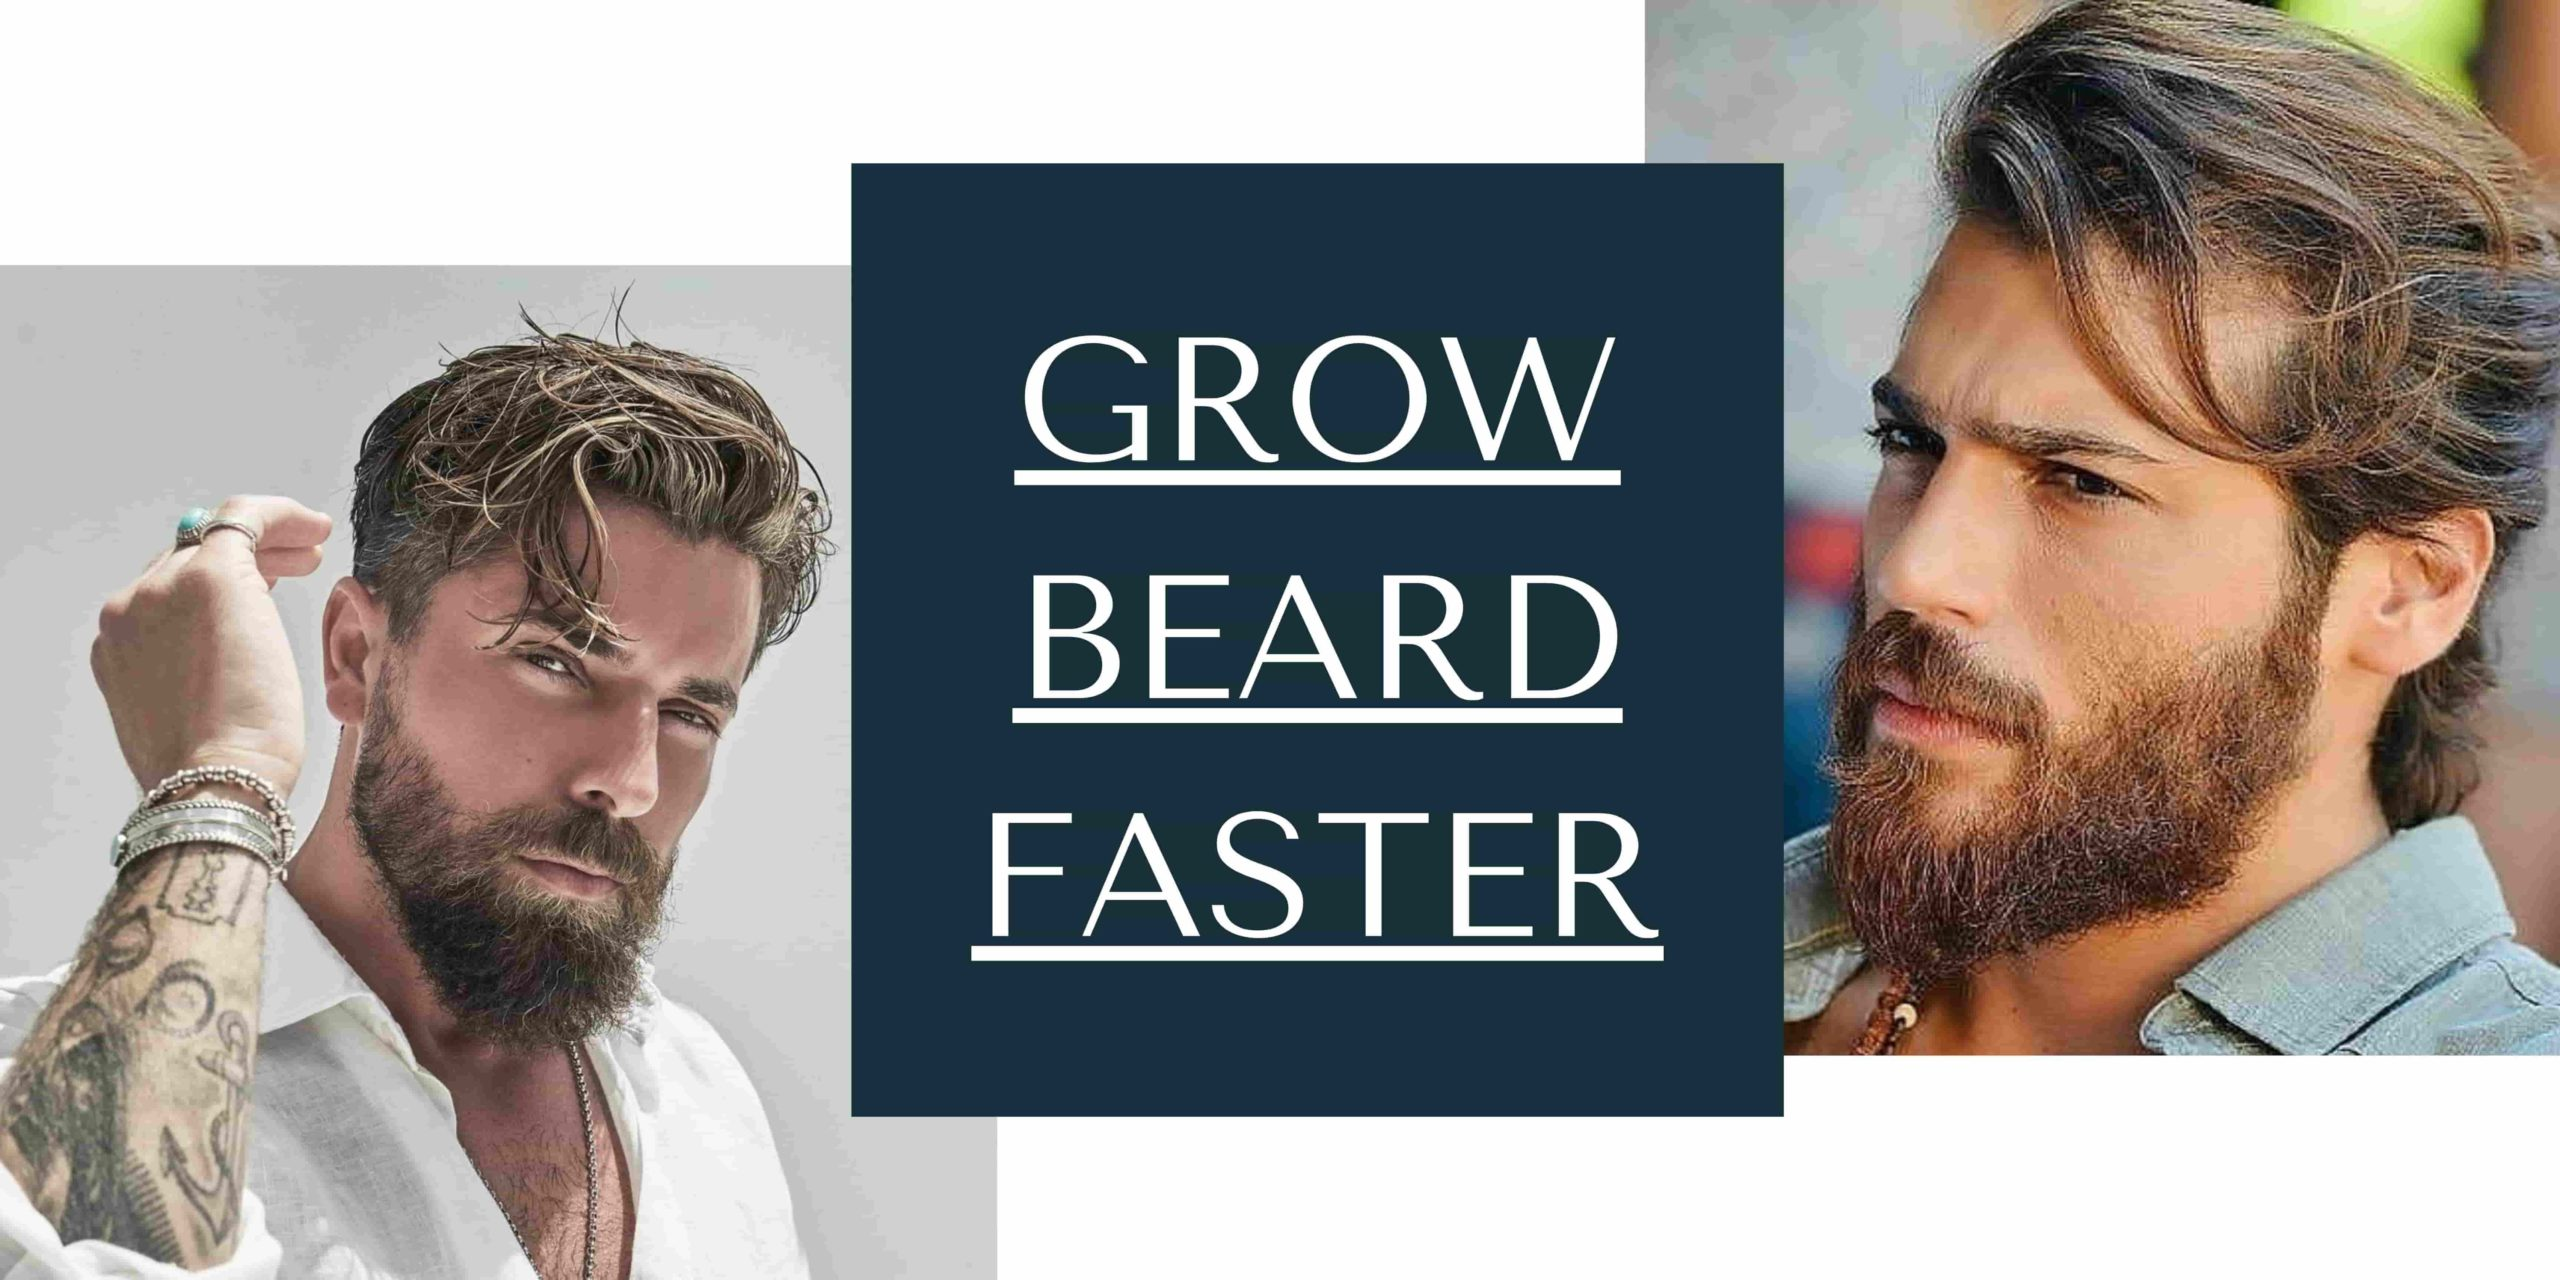 You are currently viewing How to Grow Beard Faster Naturally | Shave Goatee in 5 steps